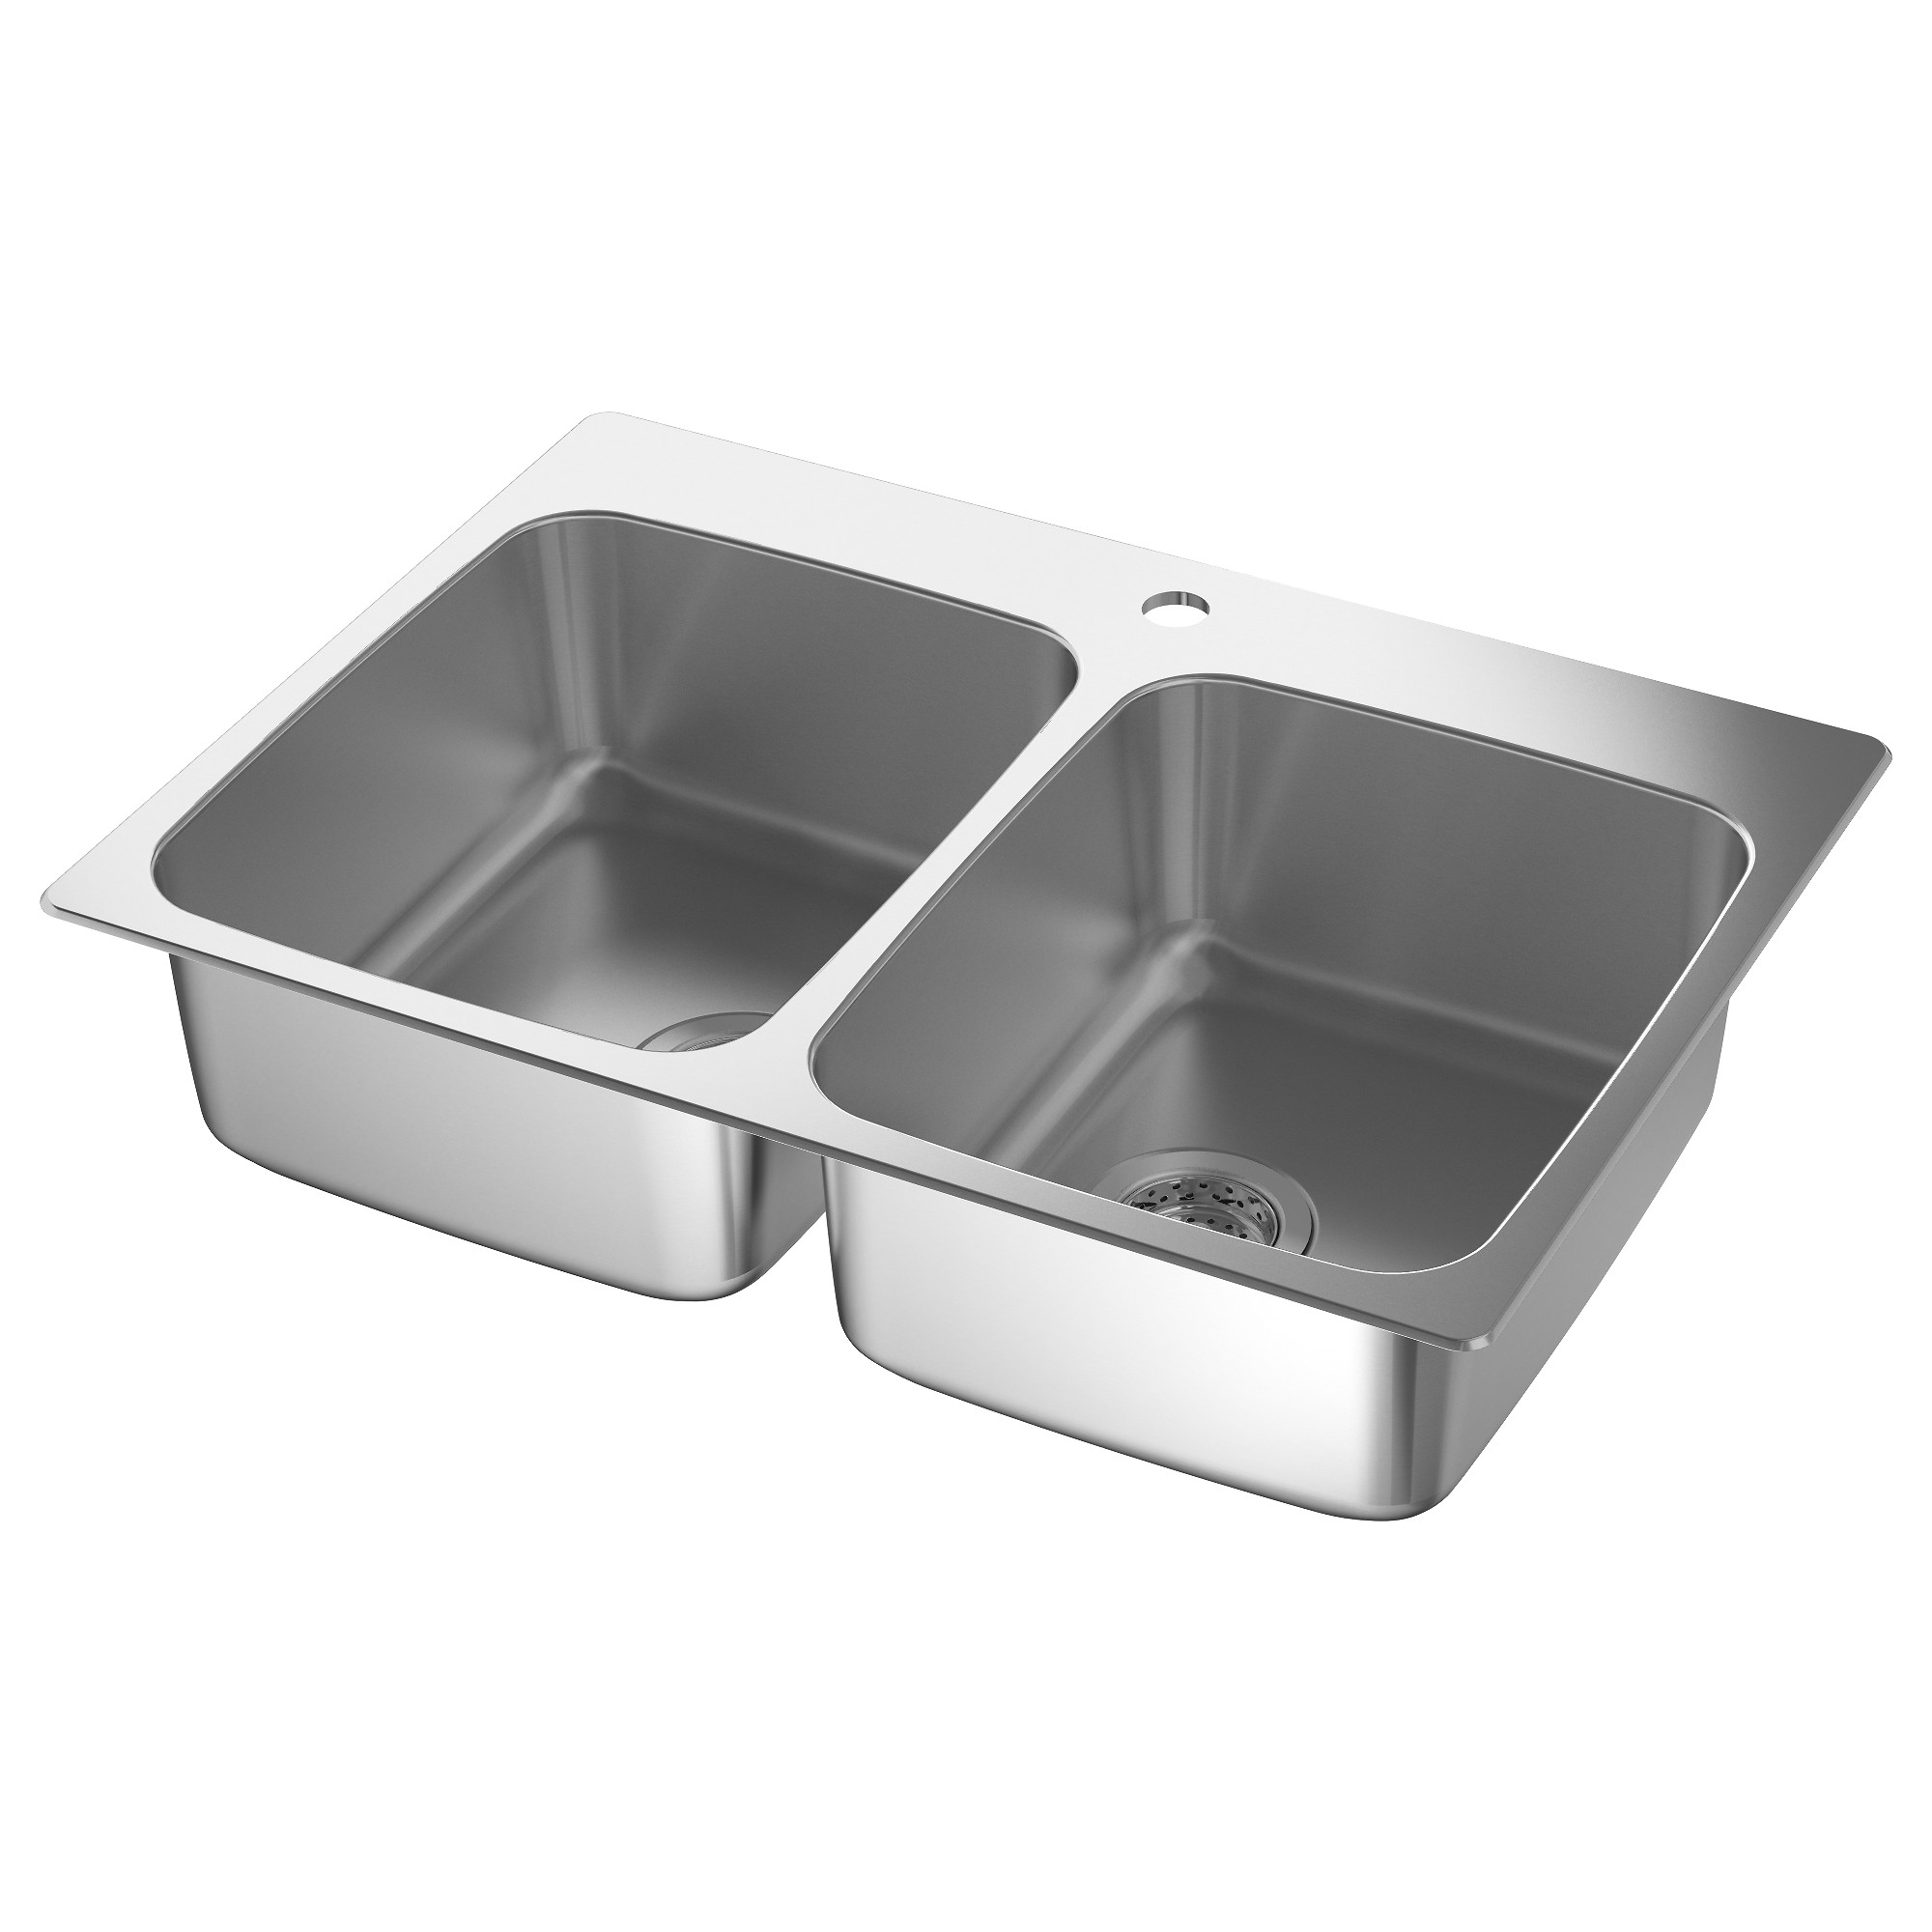 L Ngudden Double Bowl Top Mount Sink Stainless Steel Length 29 1 2